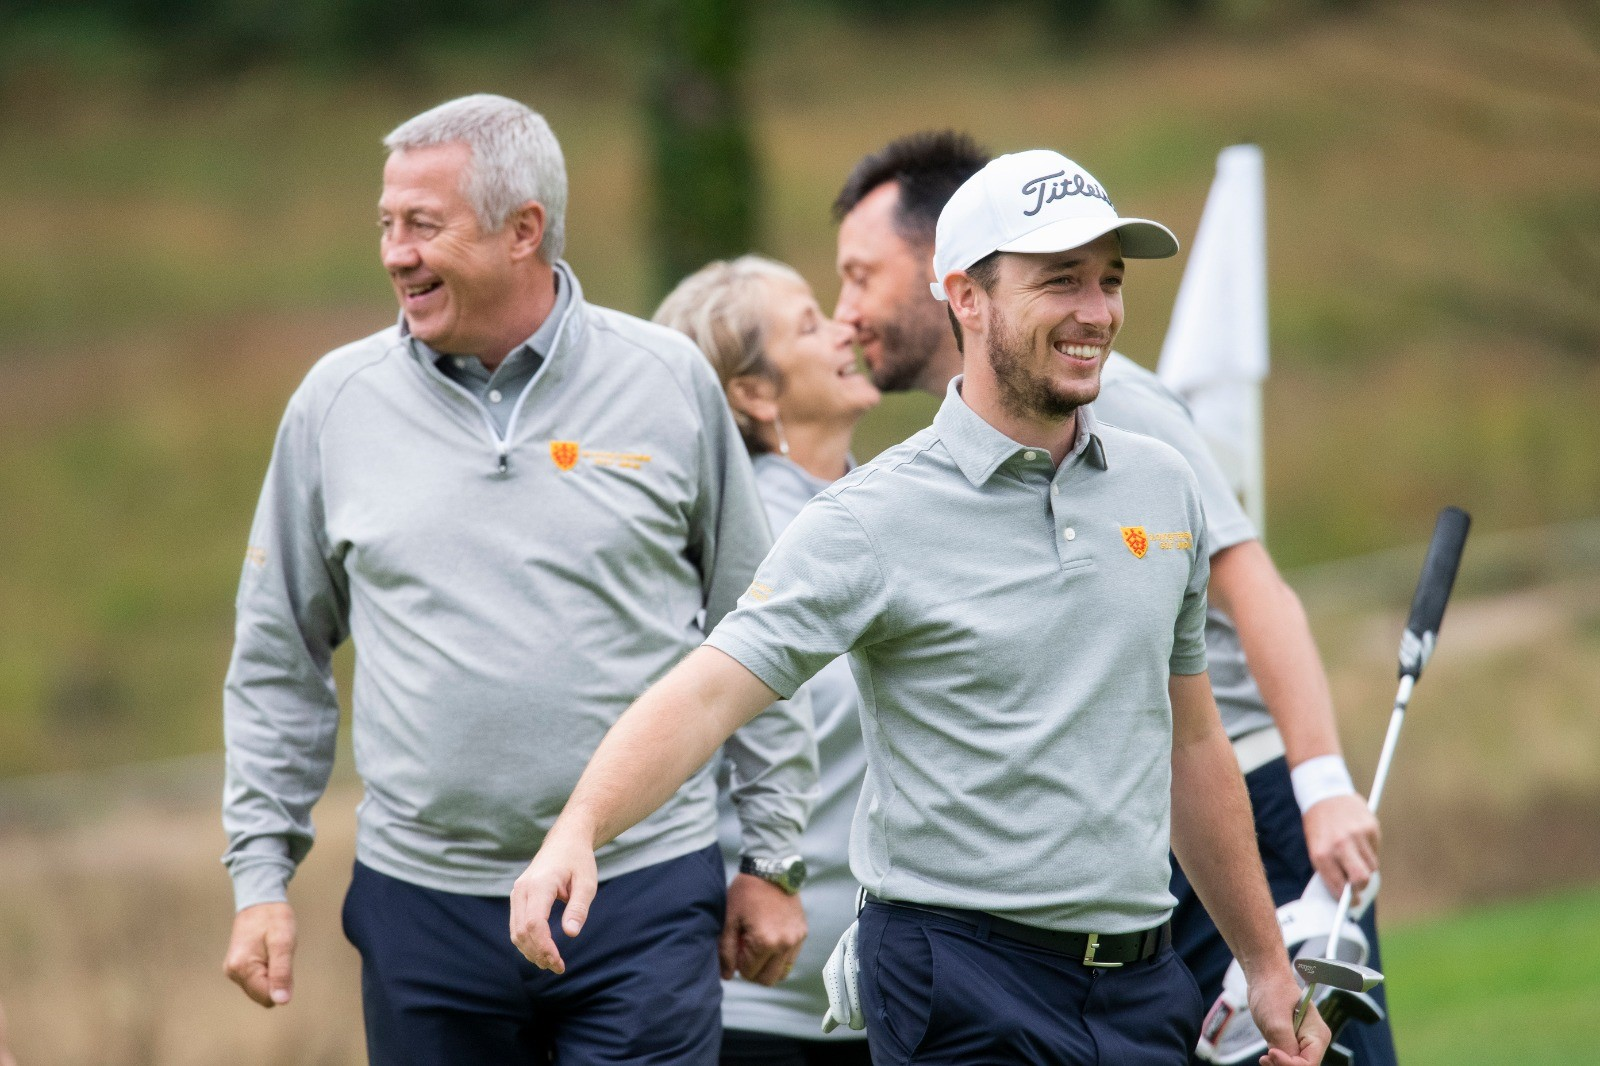 Men's County Finals: Gloucestershire take pole position for final day charge